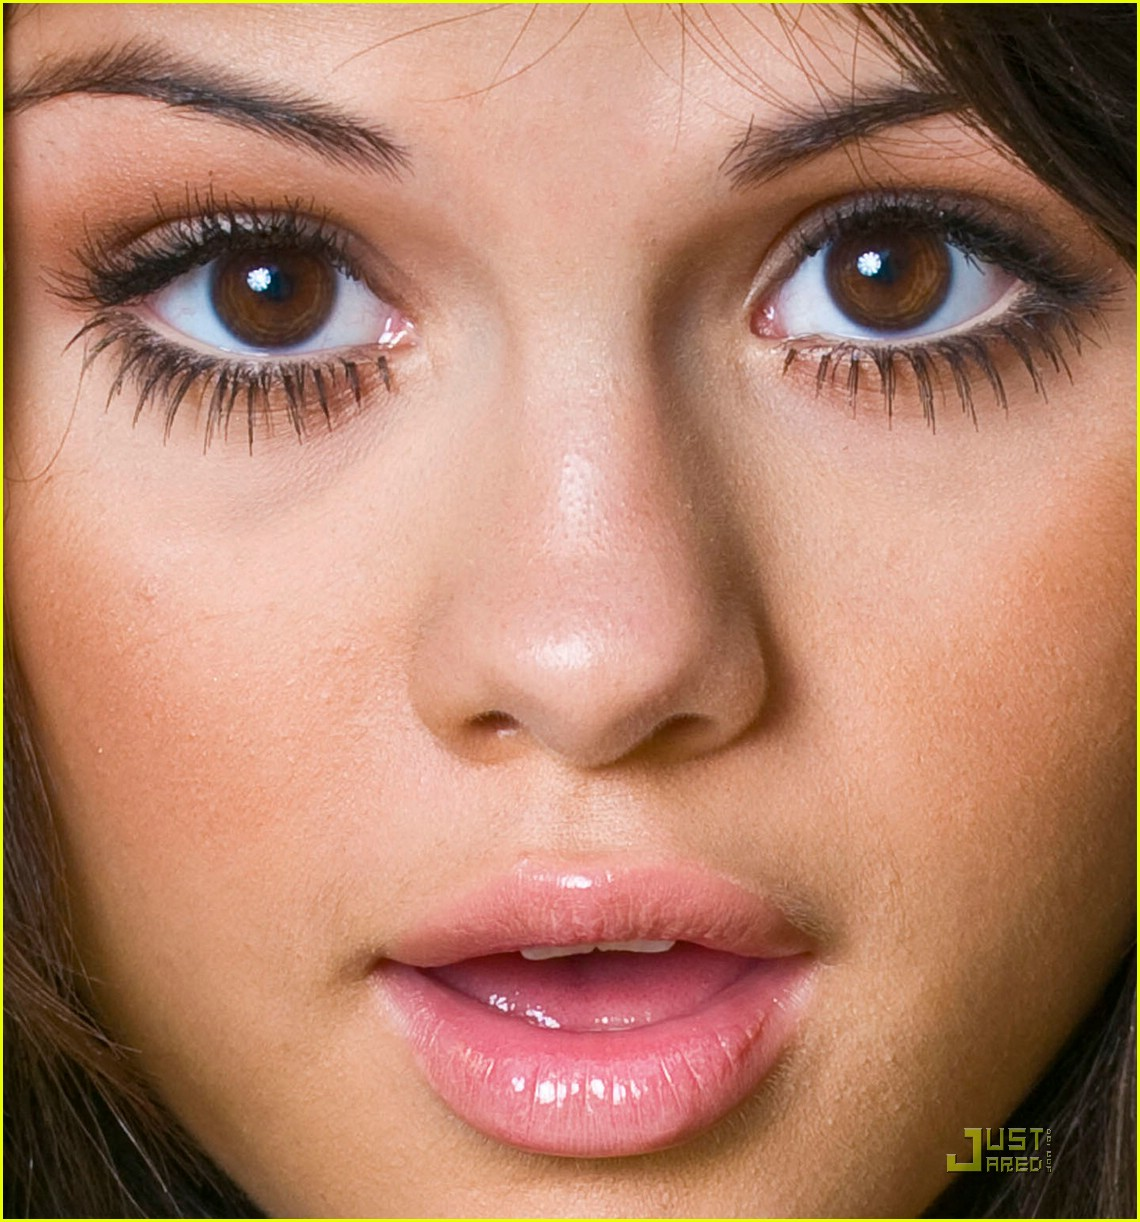 How to do makeup for small eyes